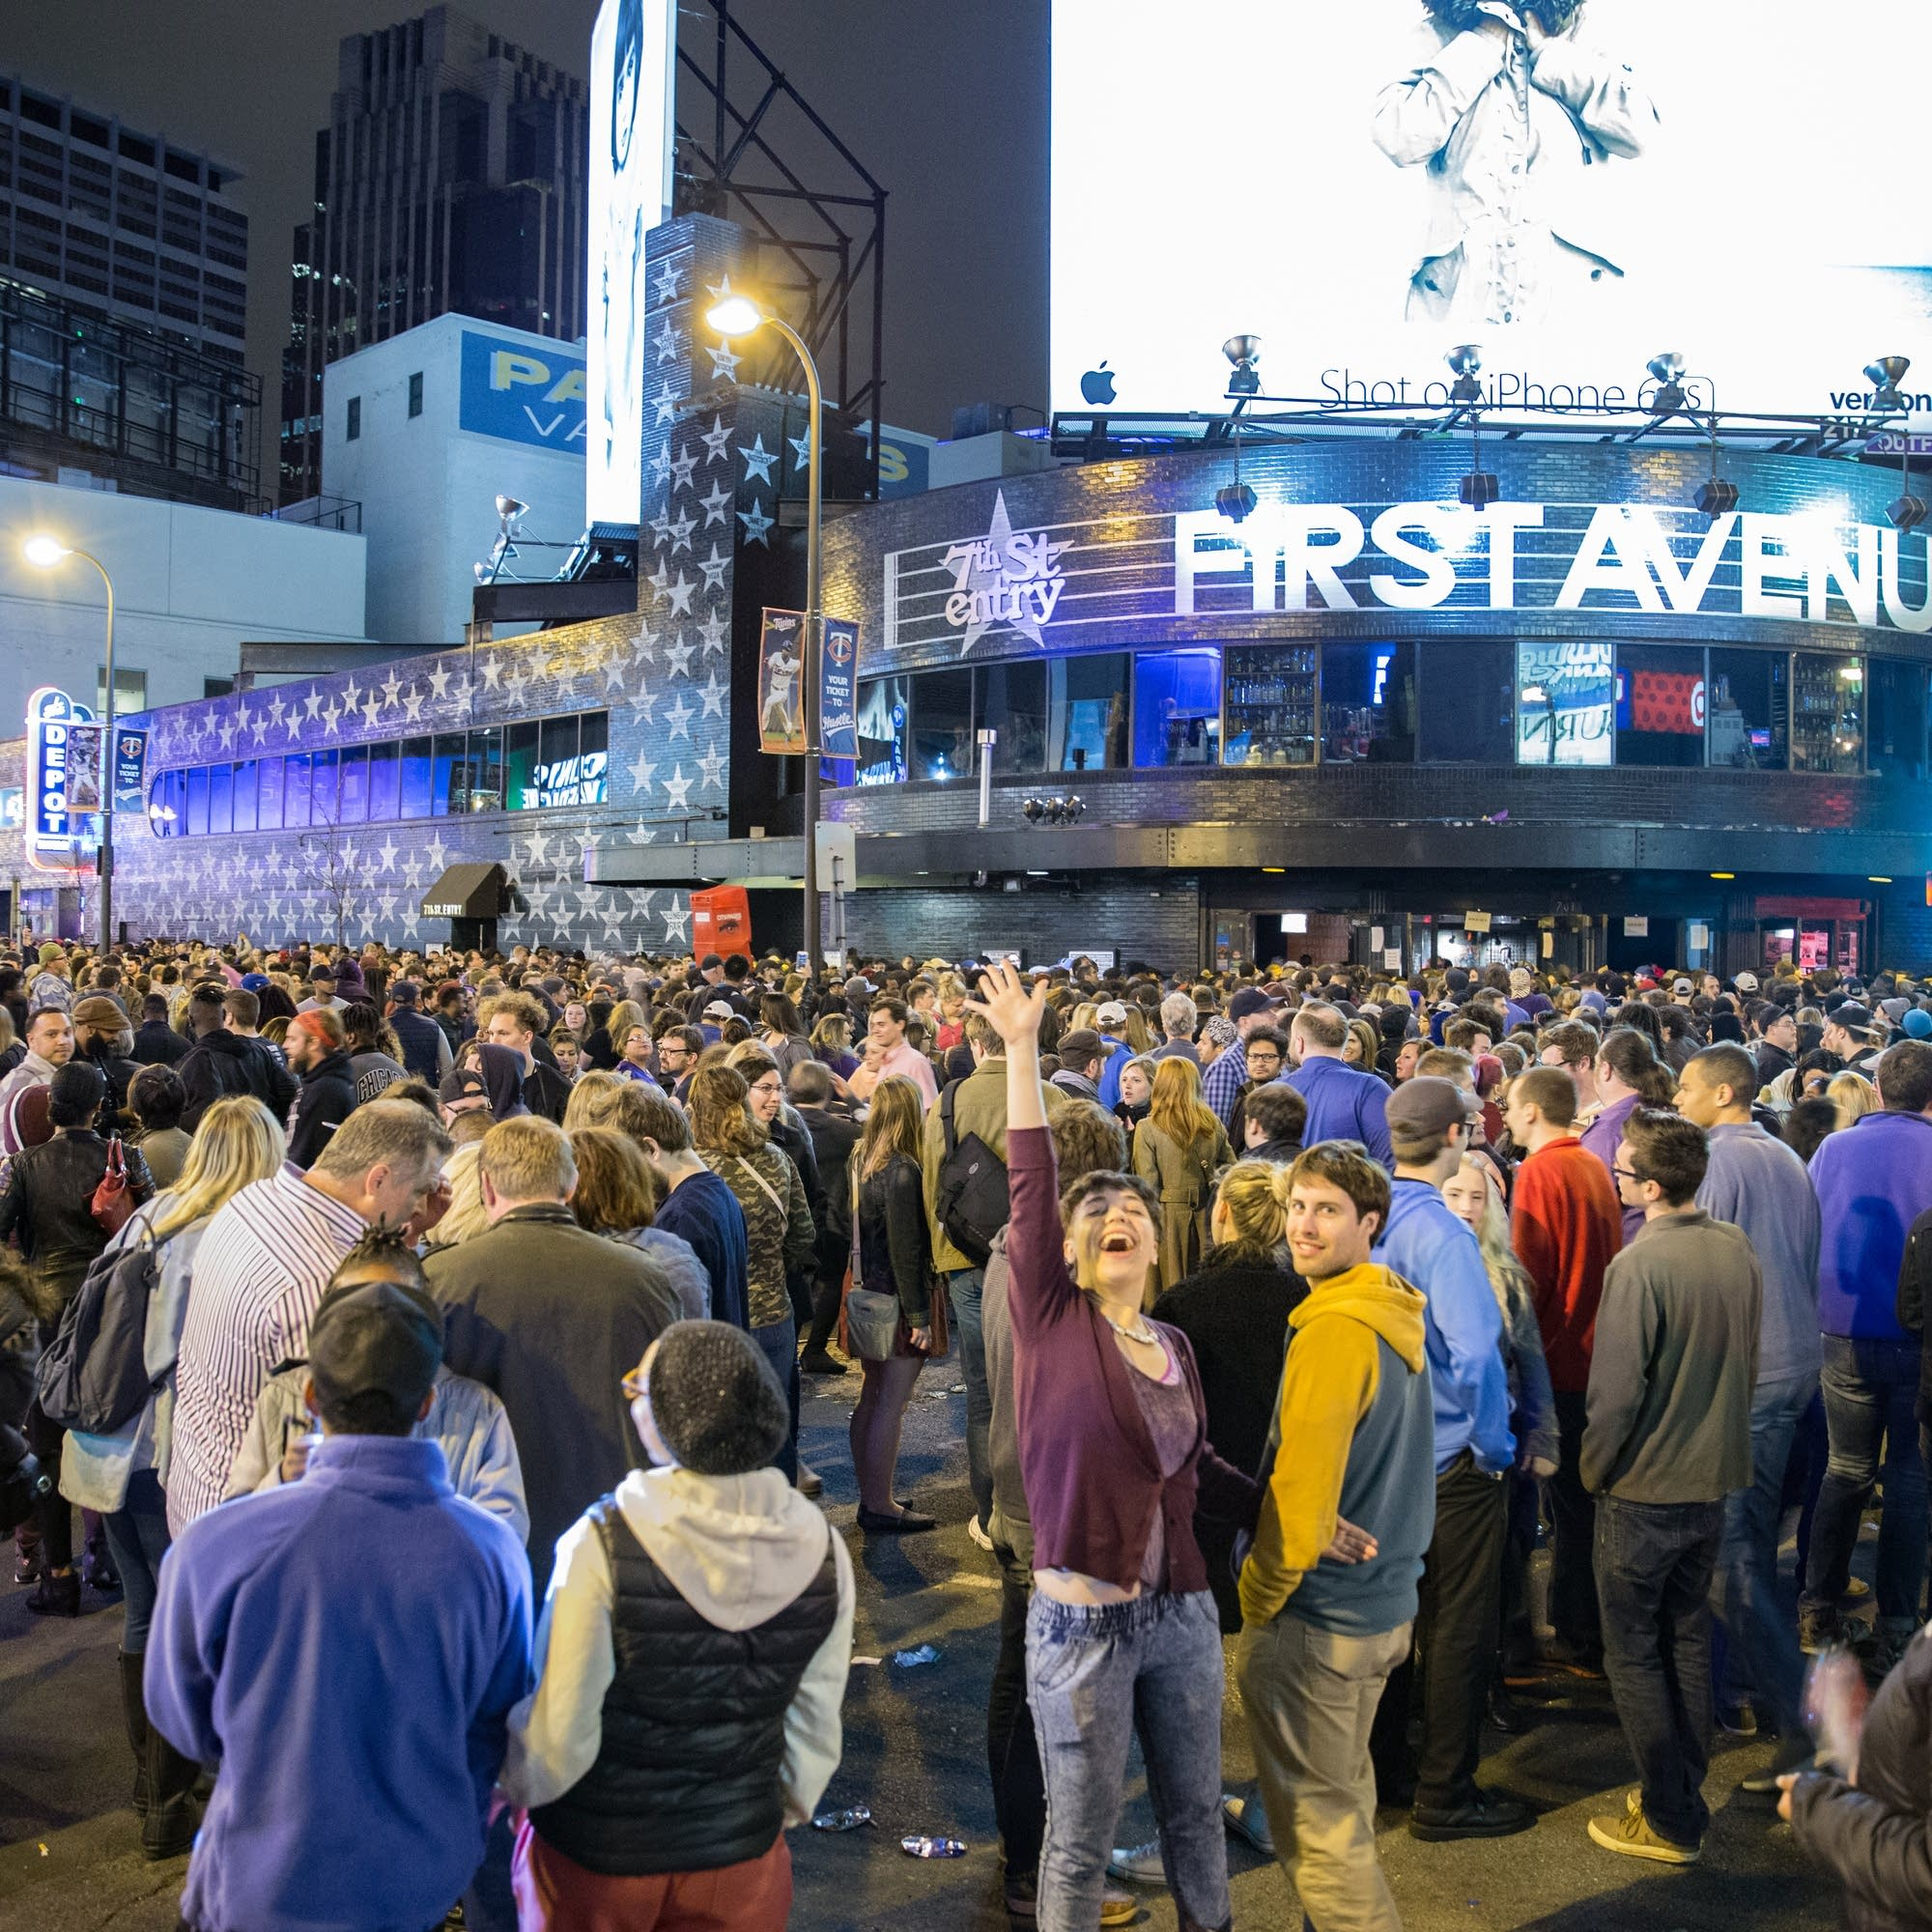 Crowds outside of First Ave in Minneapolis.